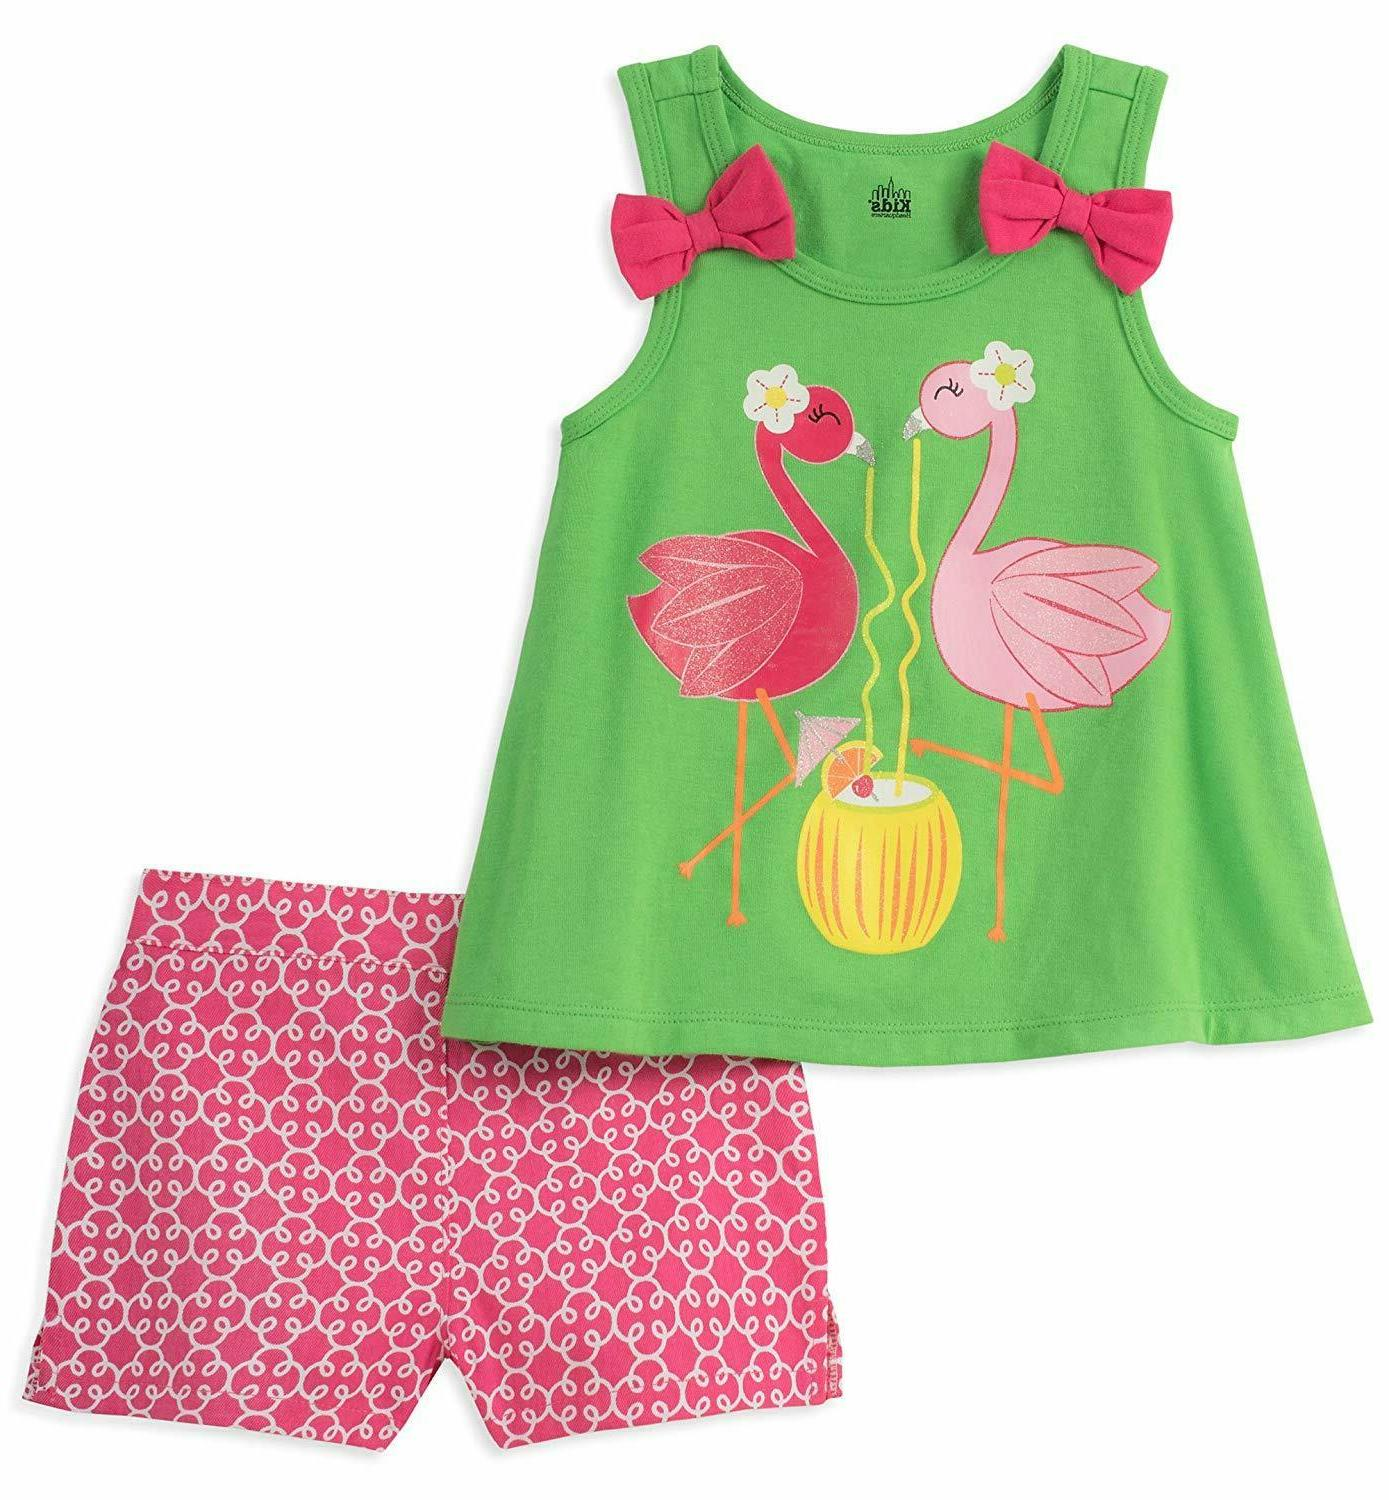 Kids Headquarters Girls Little 2 Pieces Shorts Set